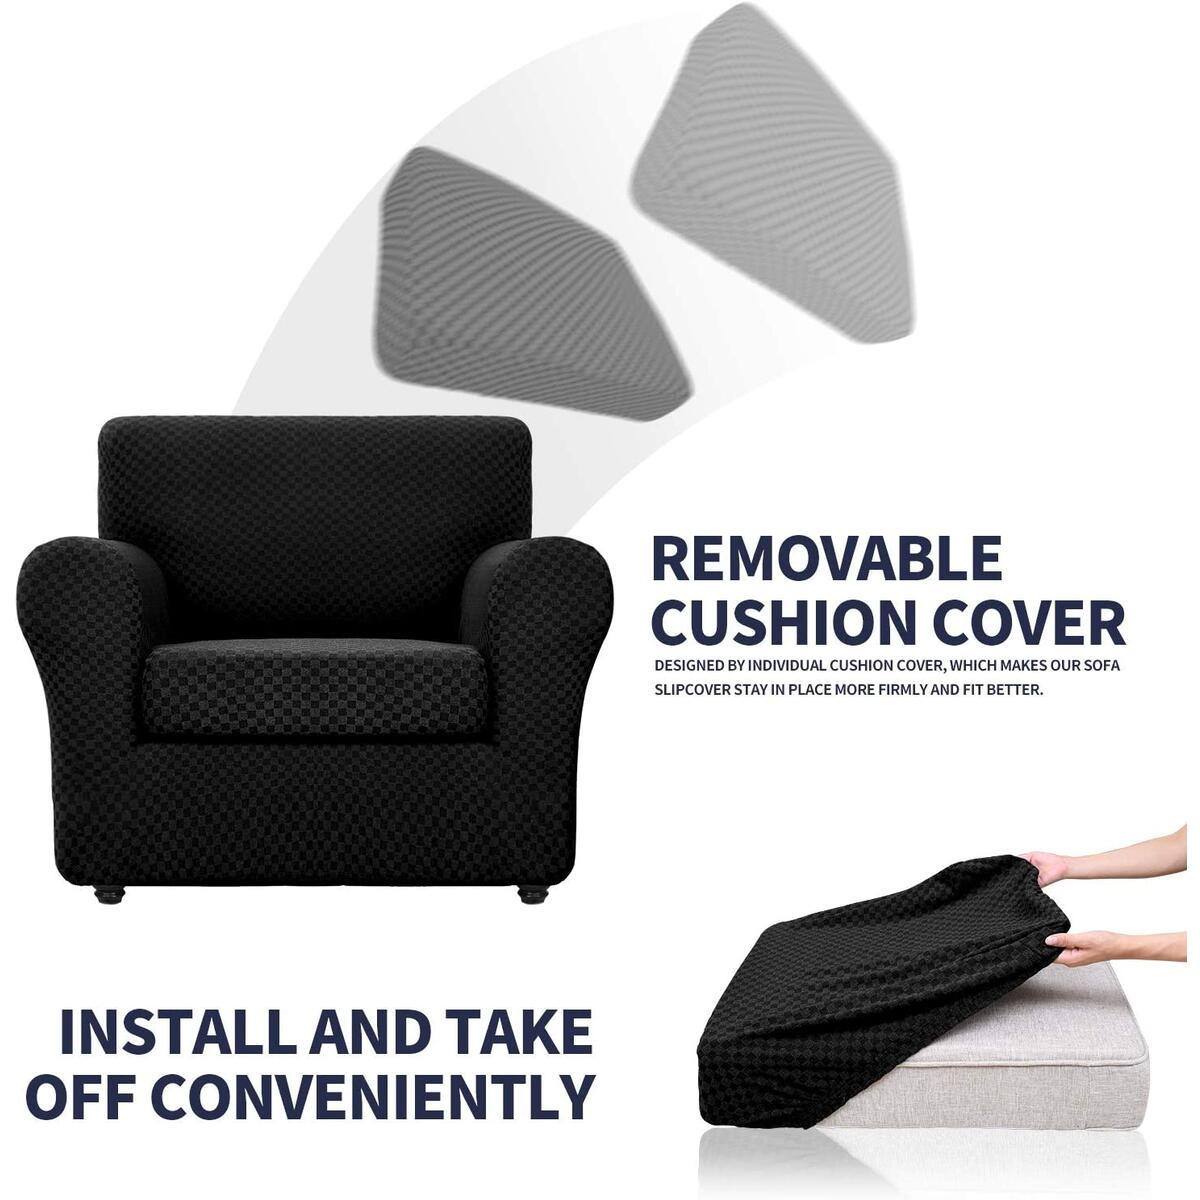 Picture of: Chelzen 3 Piece Loveseat Cover Modern Double Color Couch Covers For 2 Cushion Couch Stretch Linen Like Spandex Sofa Slipcovers Dogs Pets Love Seat Protector Loveseat Black And White Checkered Sofa Slipcovers Slipcovers